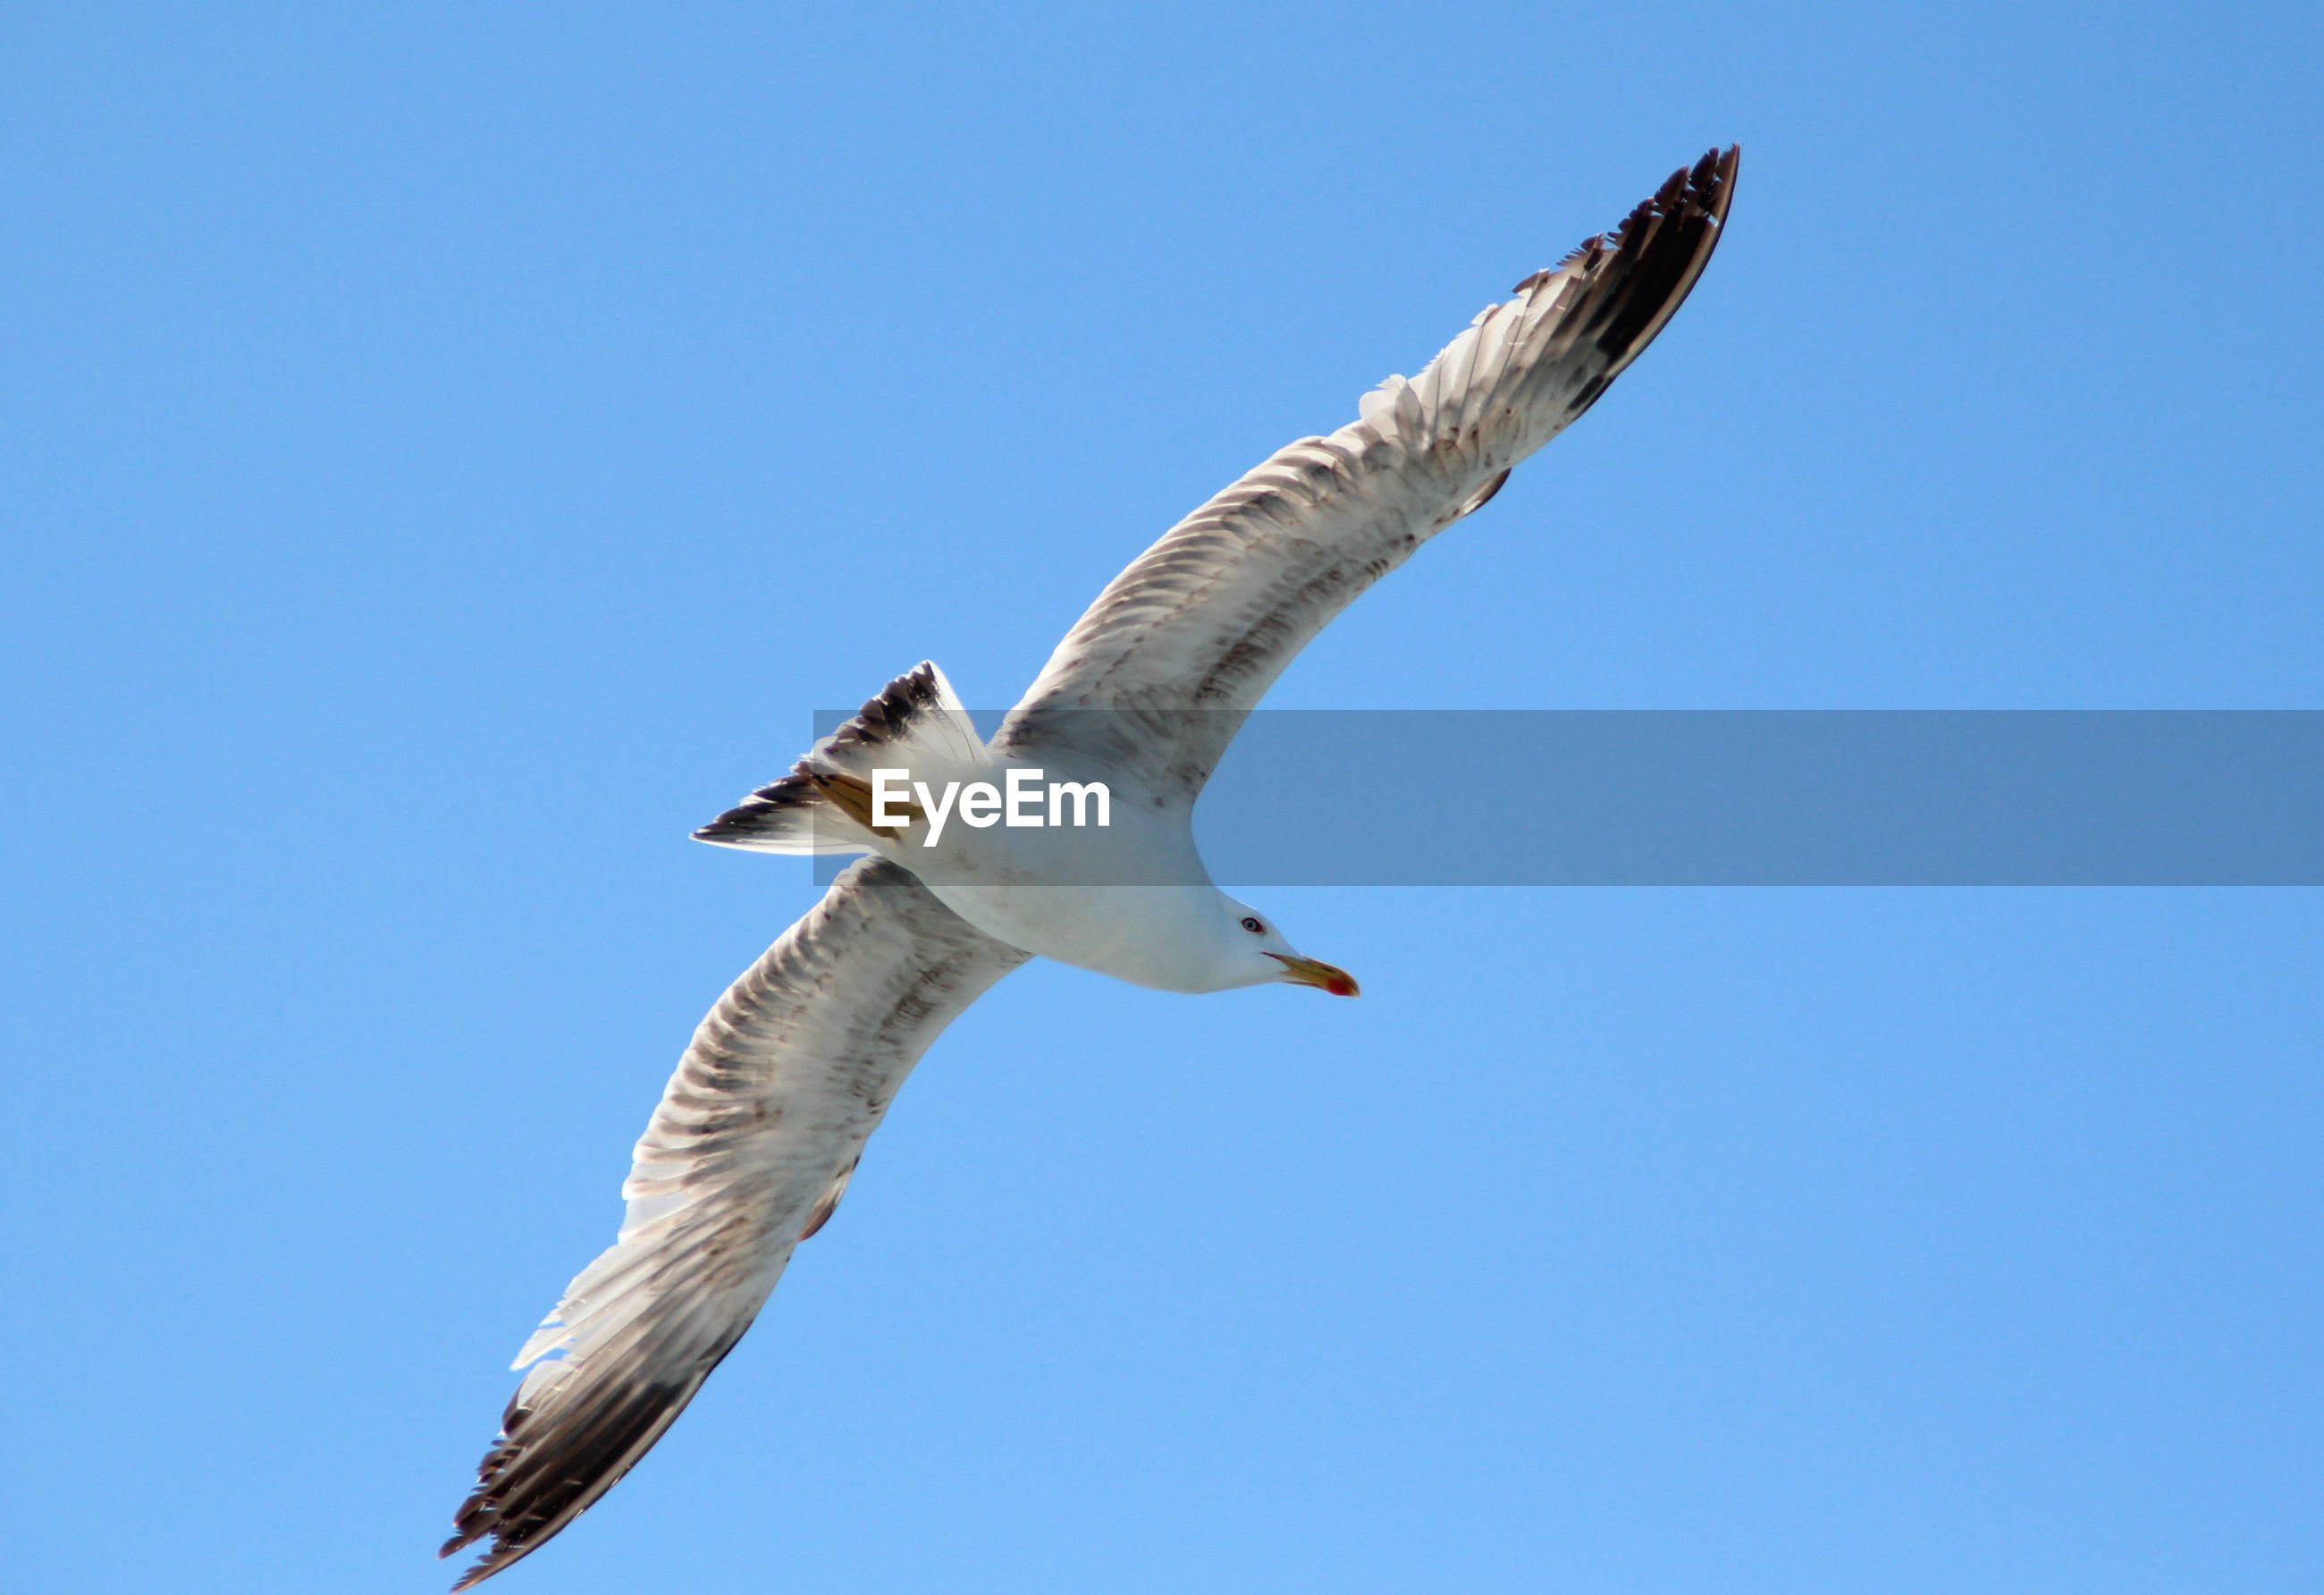 LOW ANGLE VIEW OF SEAGULL FLYING IN CLEAR SKY